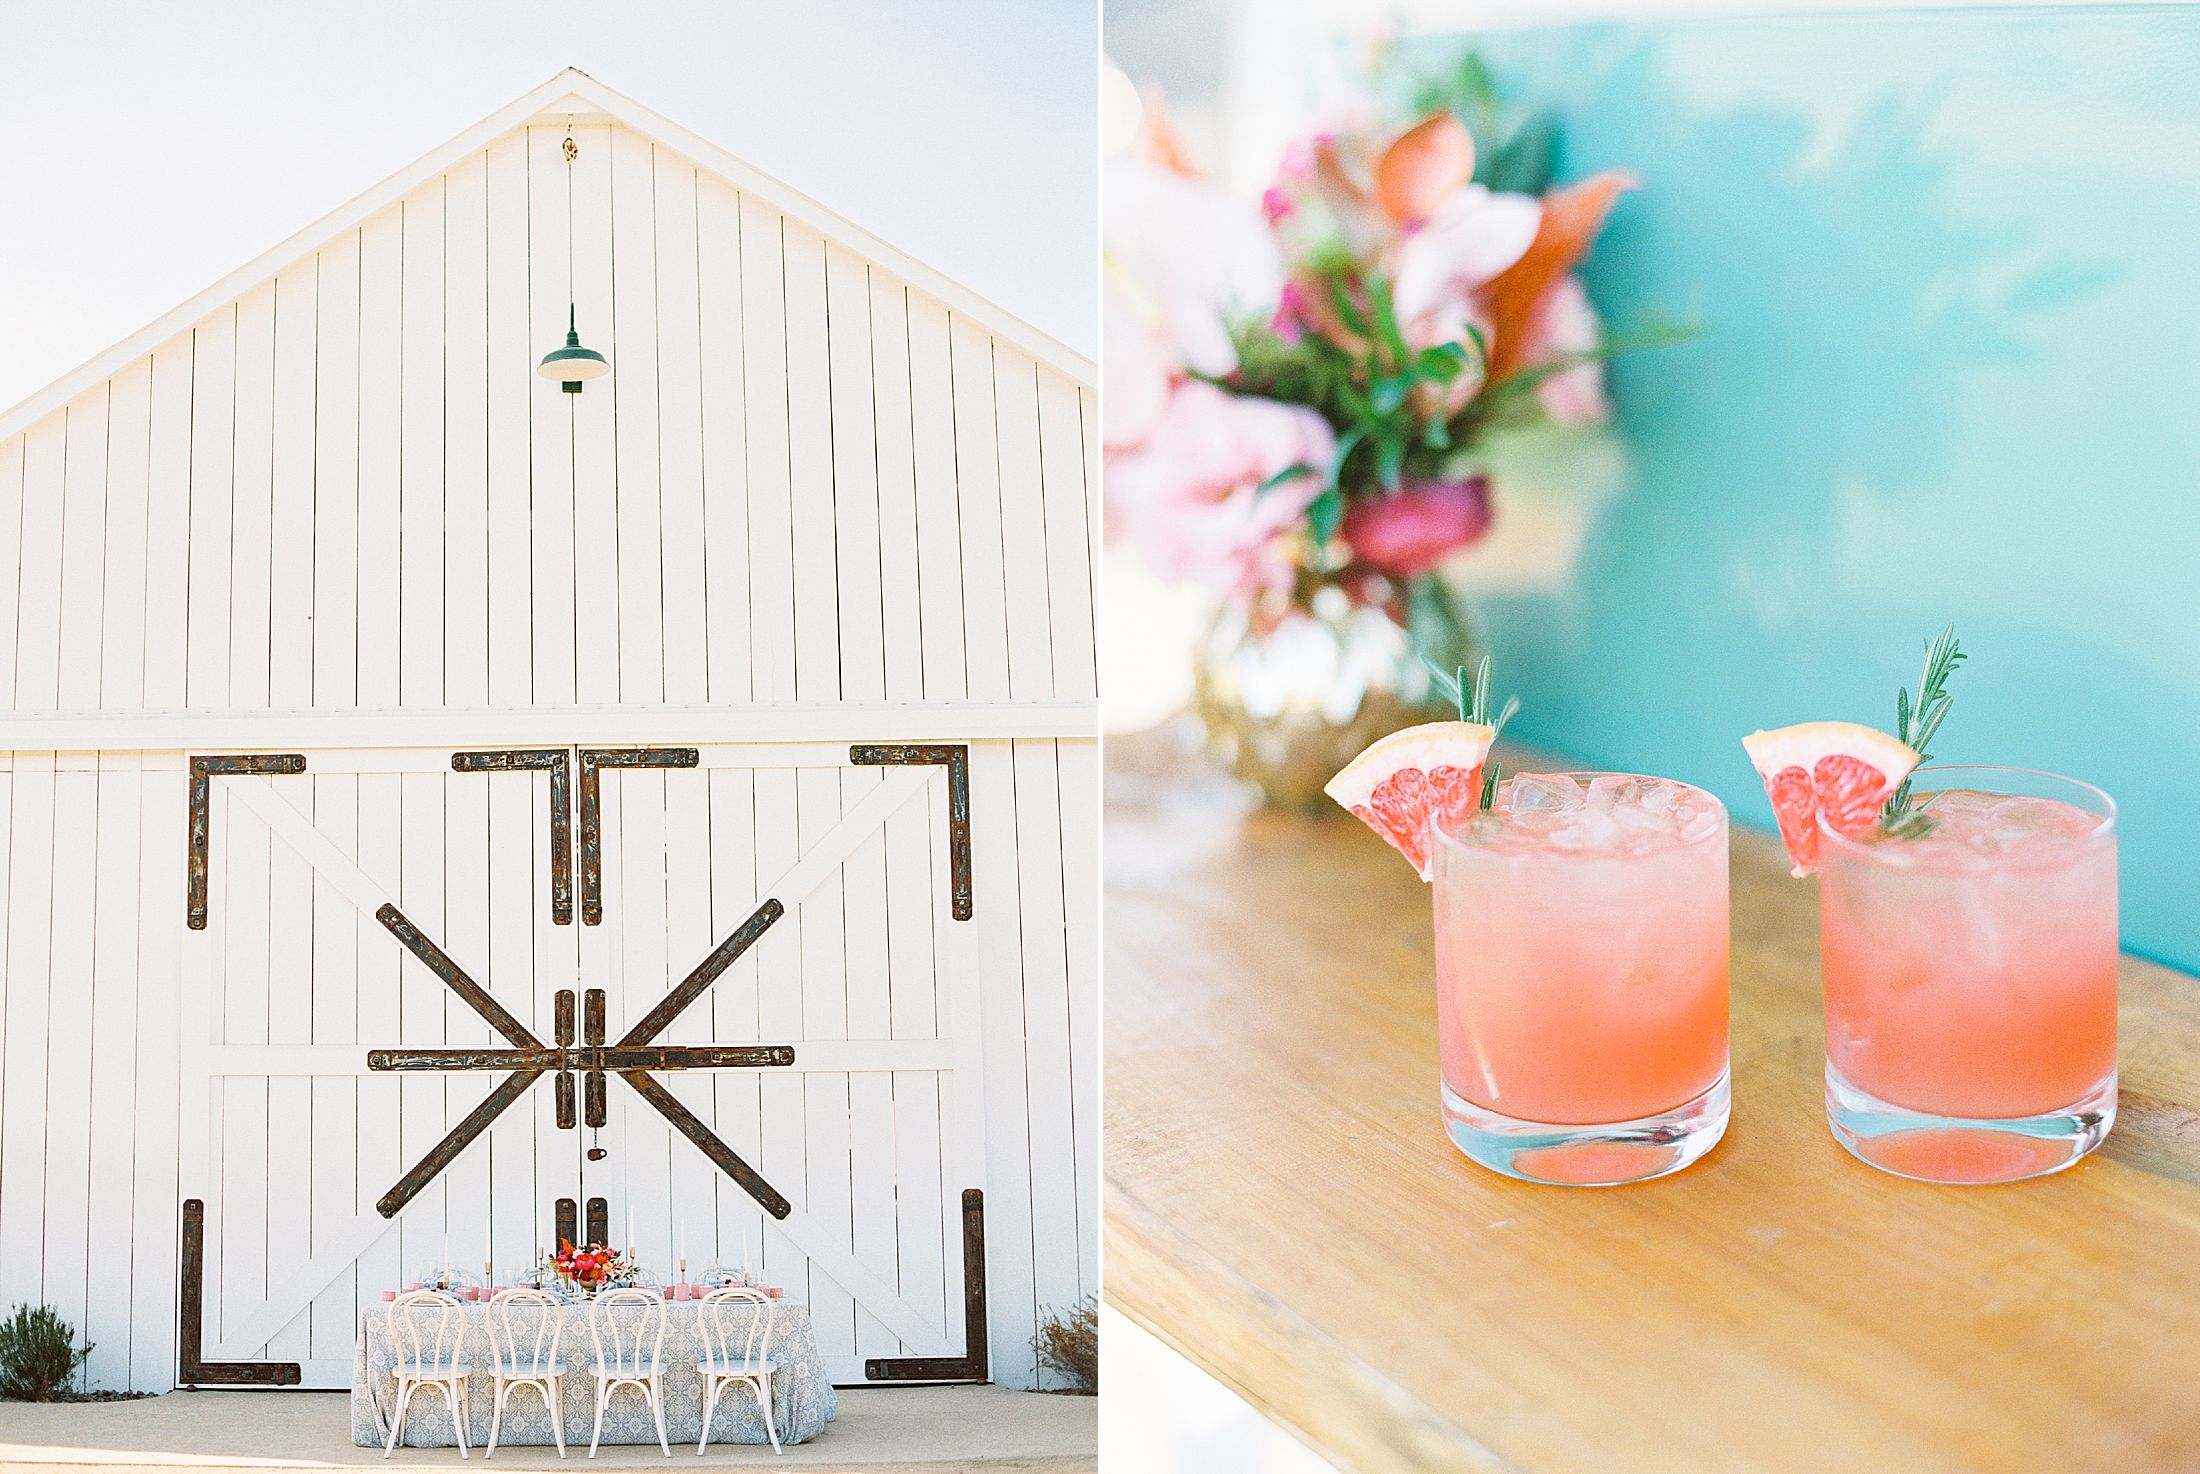 White Barn Edna Valley Wedding Inspiration - San Luis Obispo Wedding - Featured on Green Wedding Shoes - Ashley Baumgartner - FM Events SLO - SLO Wedding Photographer_0001.jpg